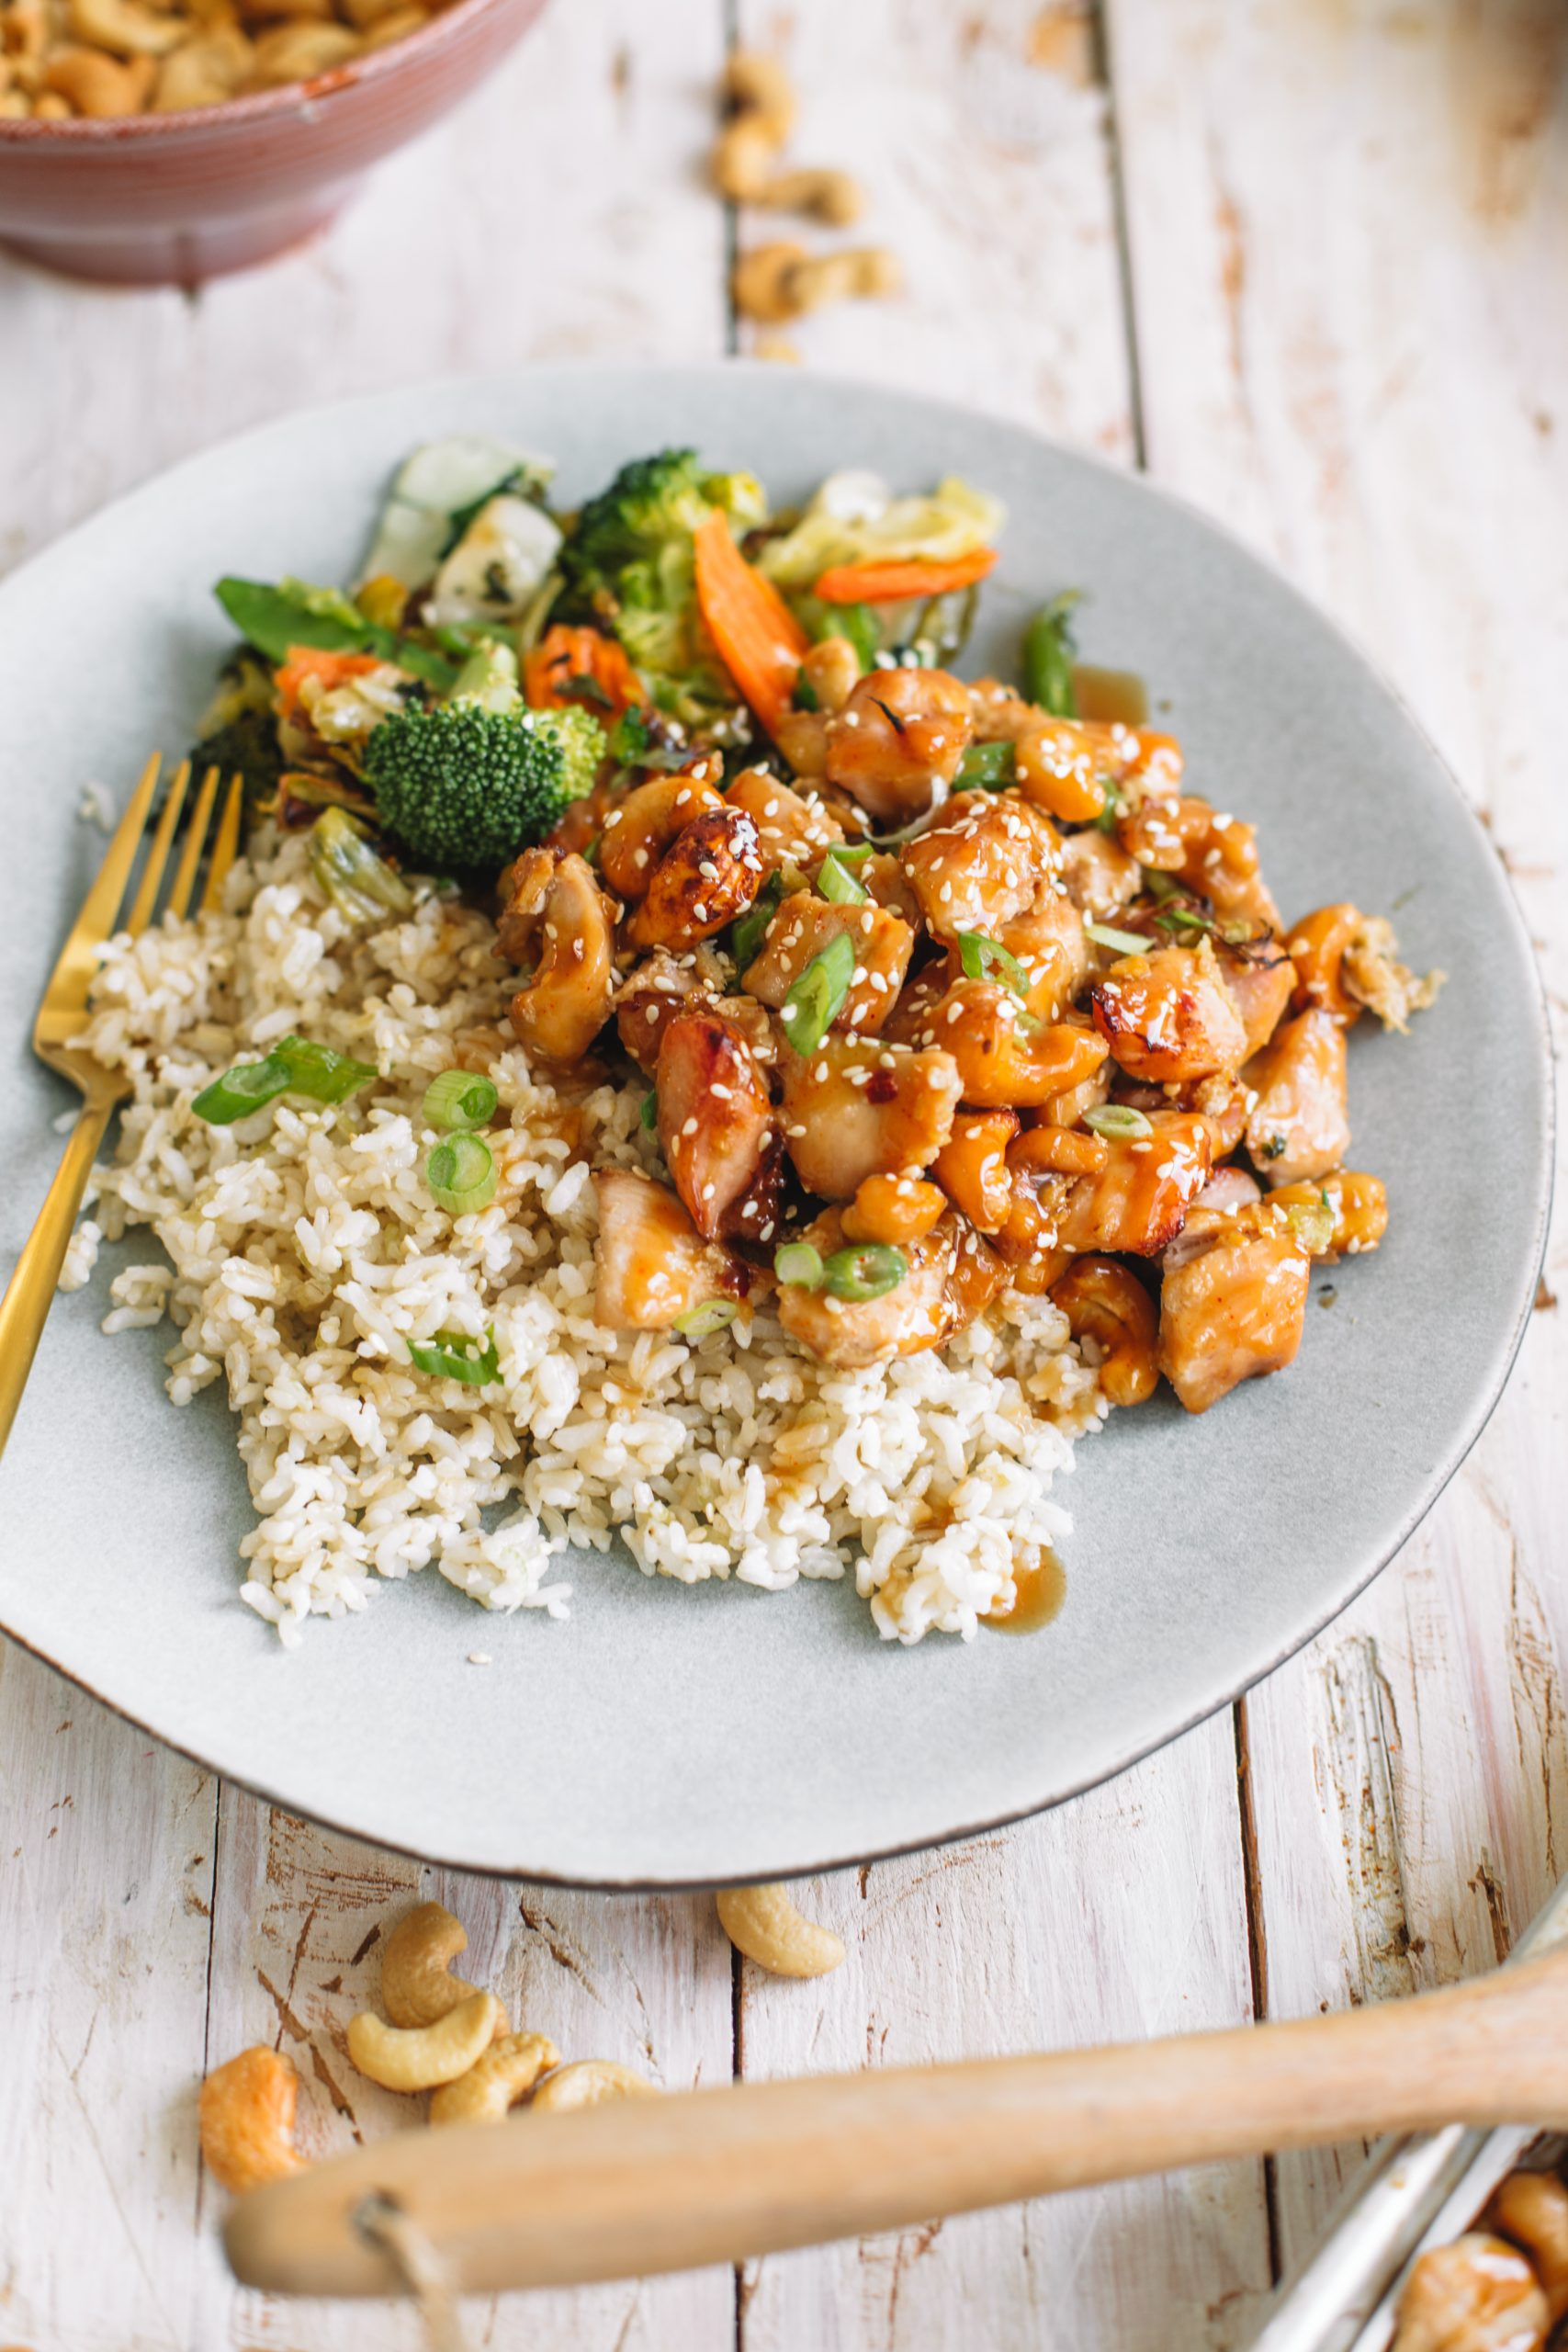 A blue plate of cashew chicken, asian style vegetables and brown rice.